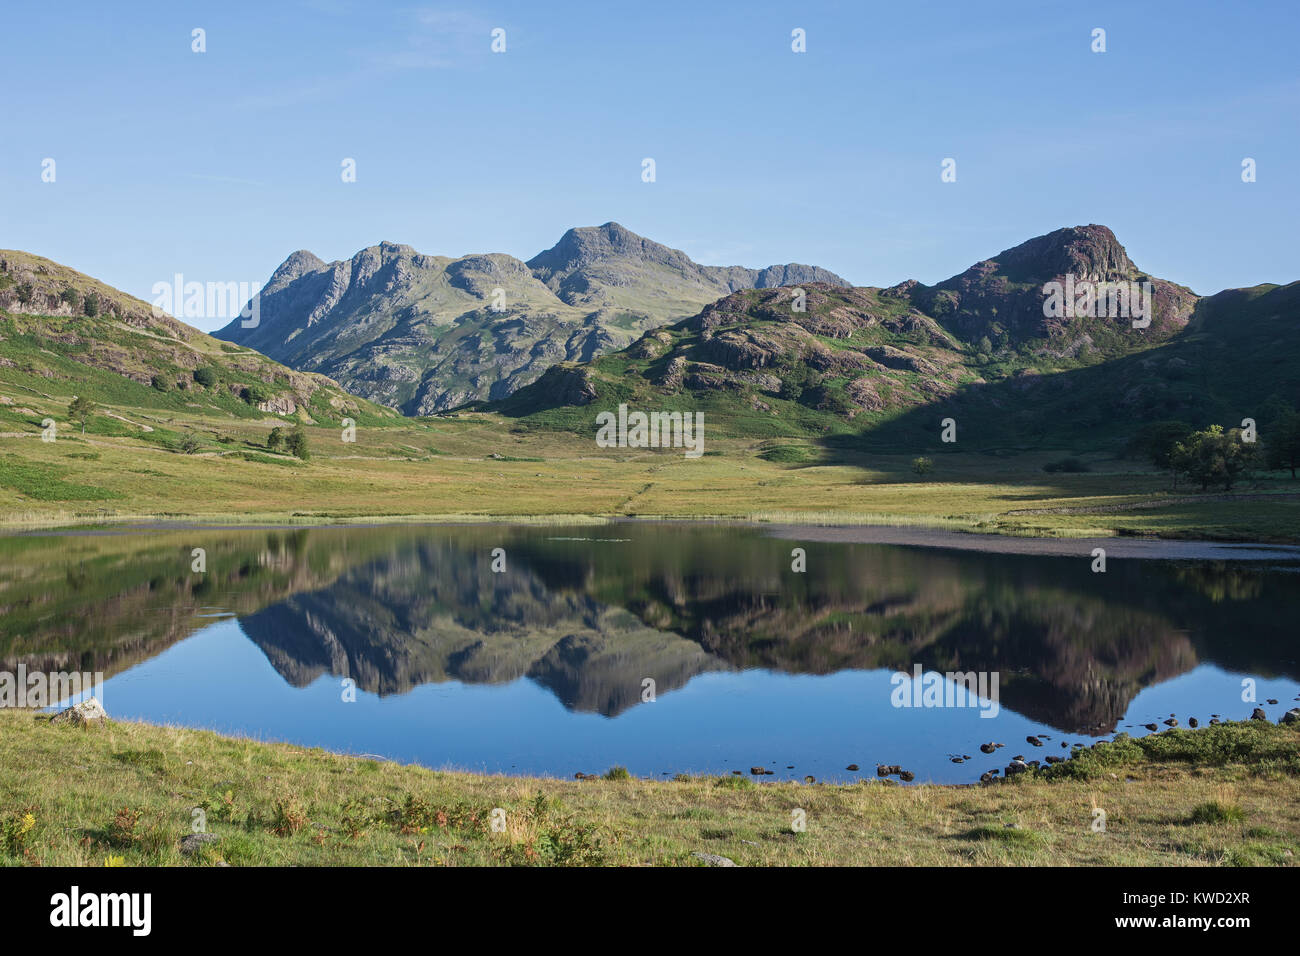 Blea Tarn and the Langdale Pikes Cumbria English Lake District England on summer morning with bright sun and reflections - Stock Image